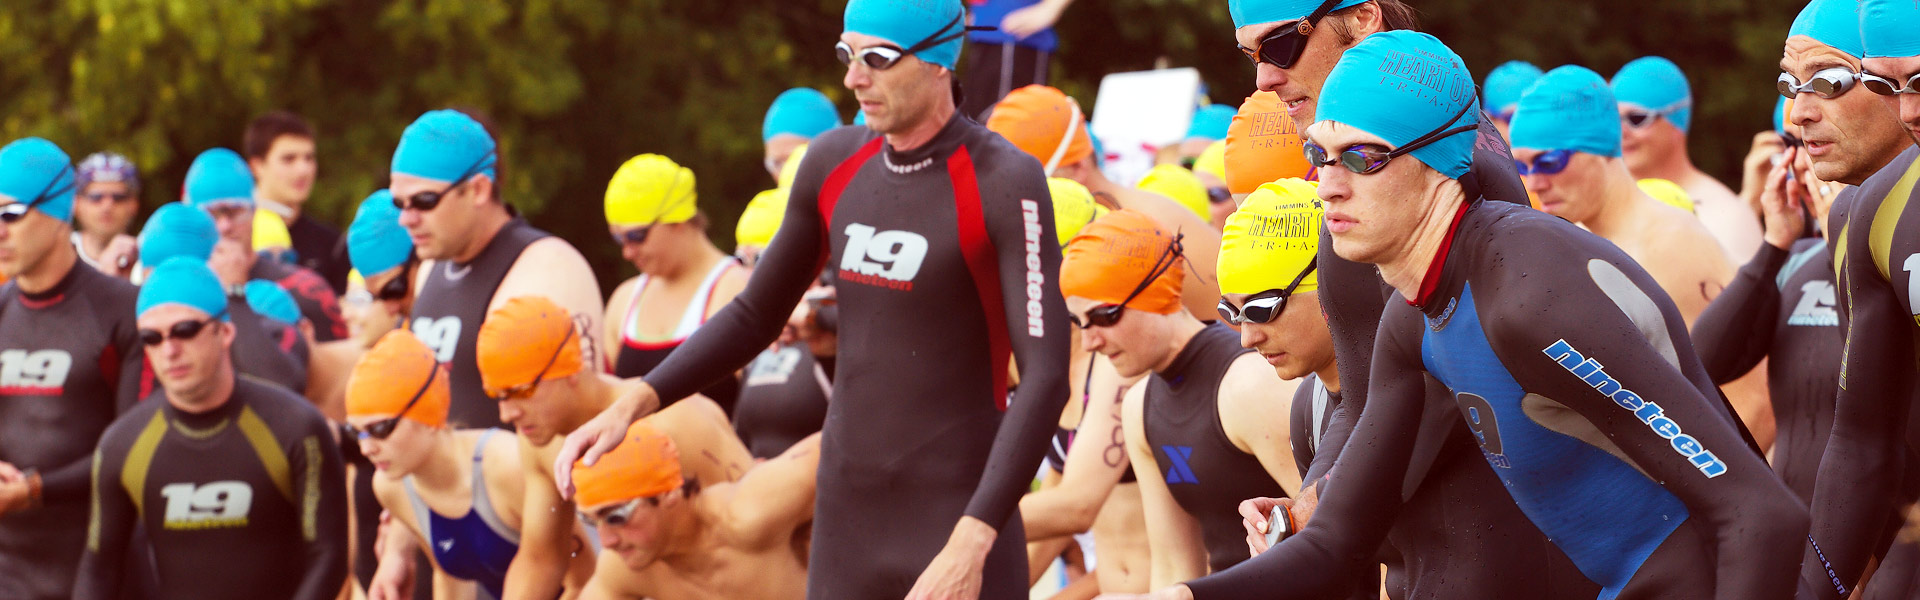 <h2>Heart of Gold Triathlon</h2> Swim, bike and run on July 14, 2014 in the fastest growing sport in North America!